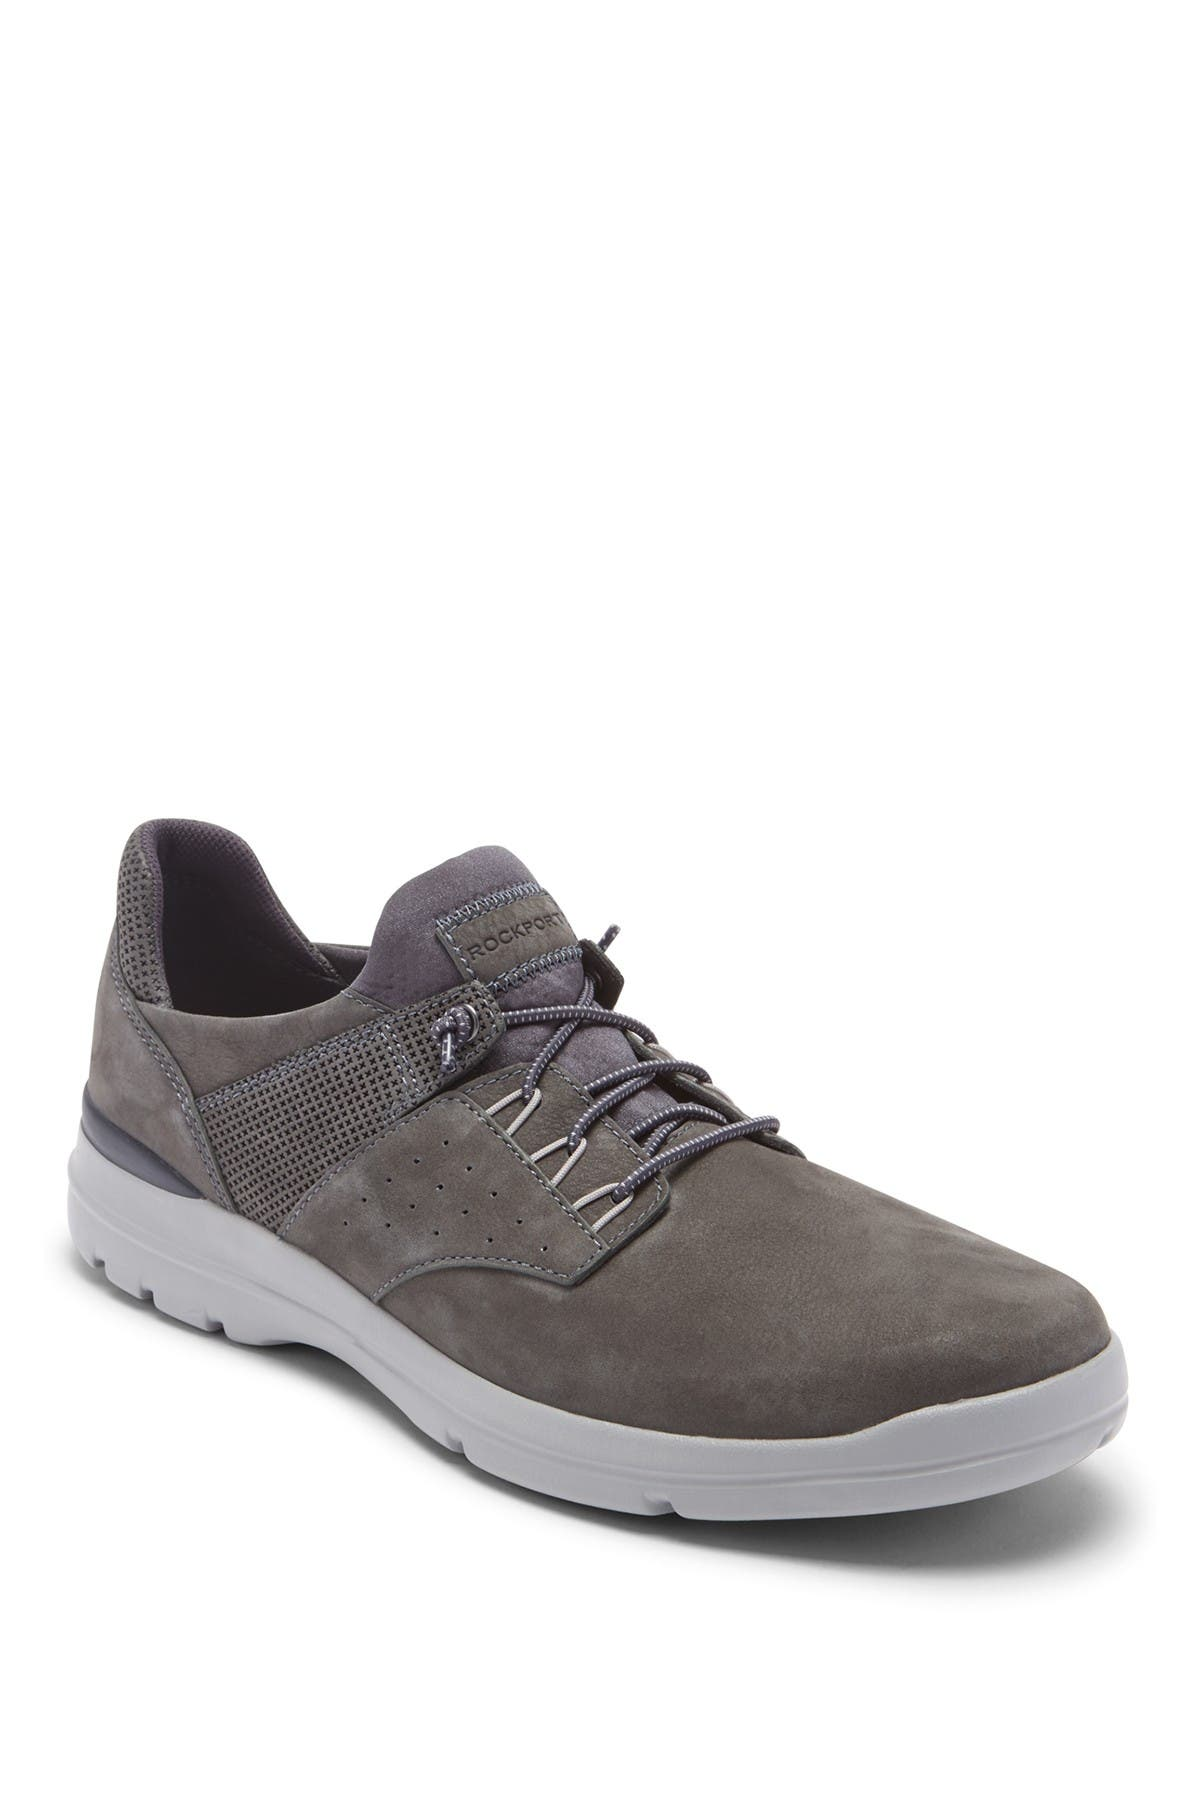 Image of Rockport City Edge Ghillie Sneaker